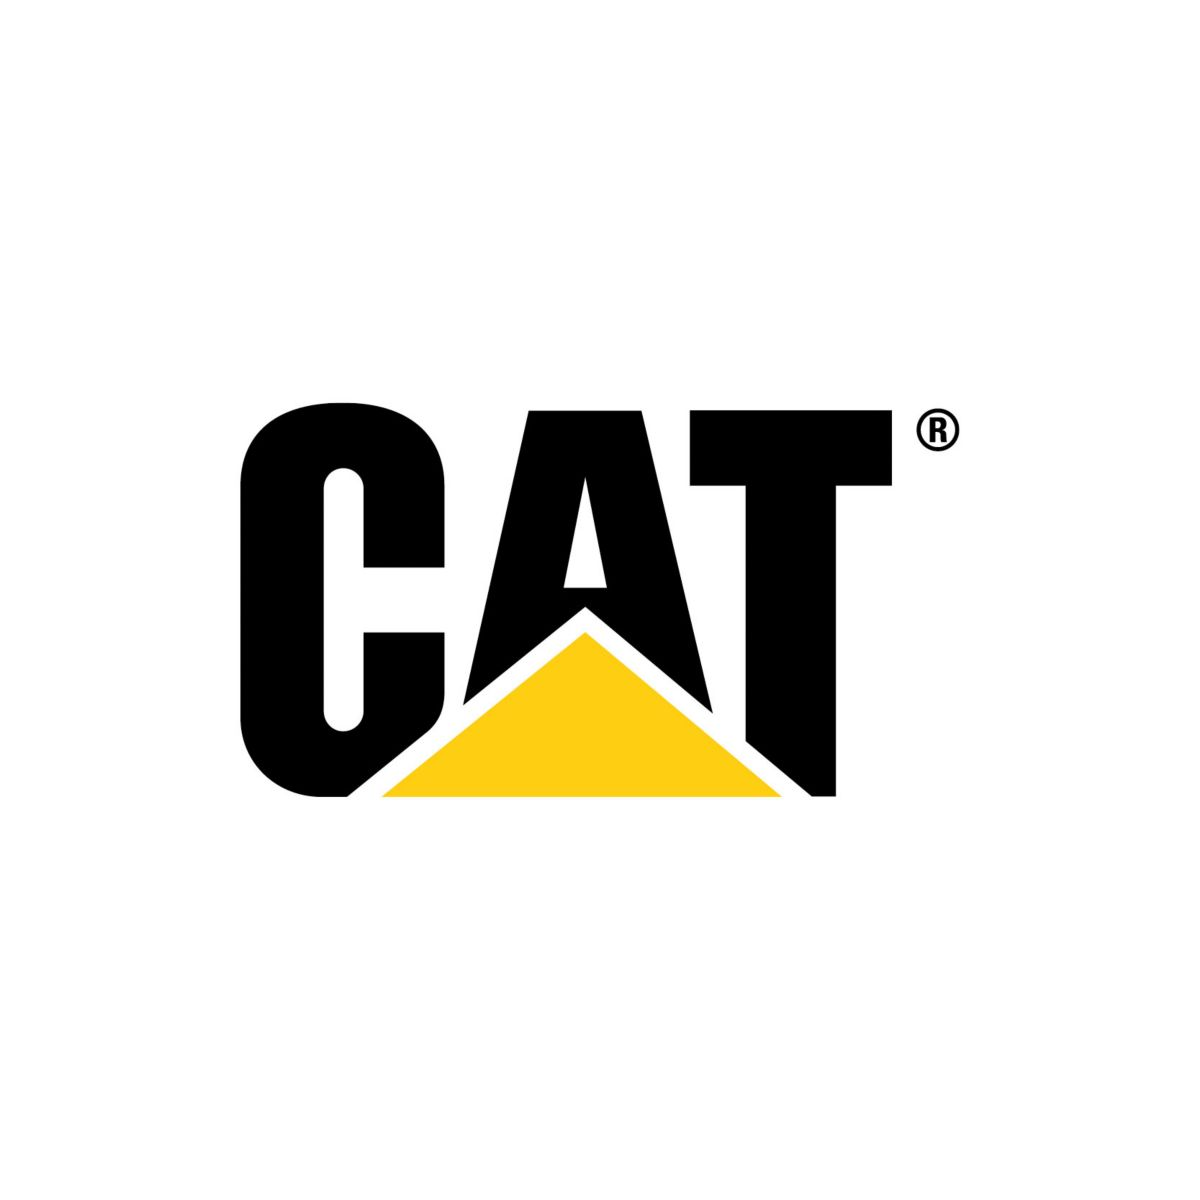 Contact Caterpillar Safety Services